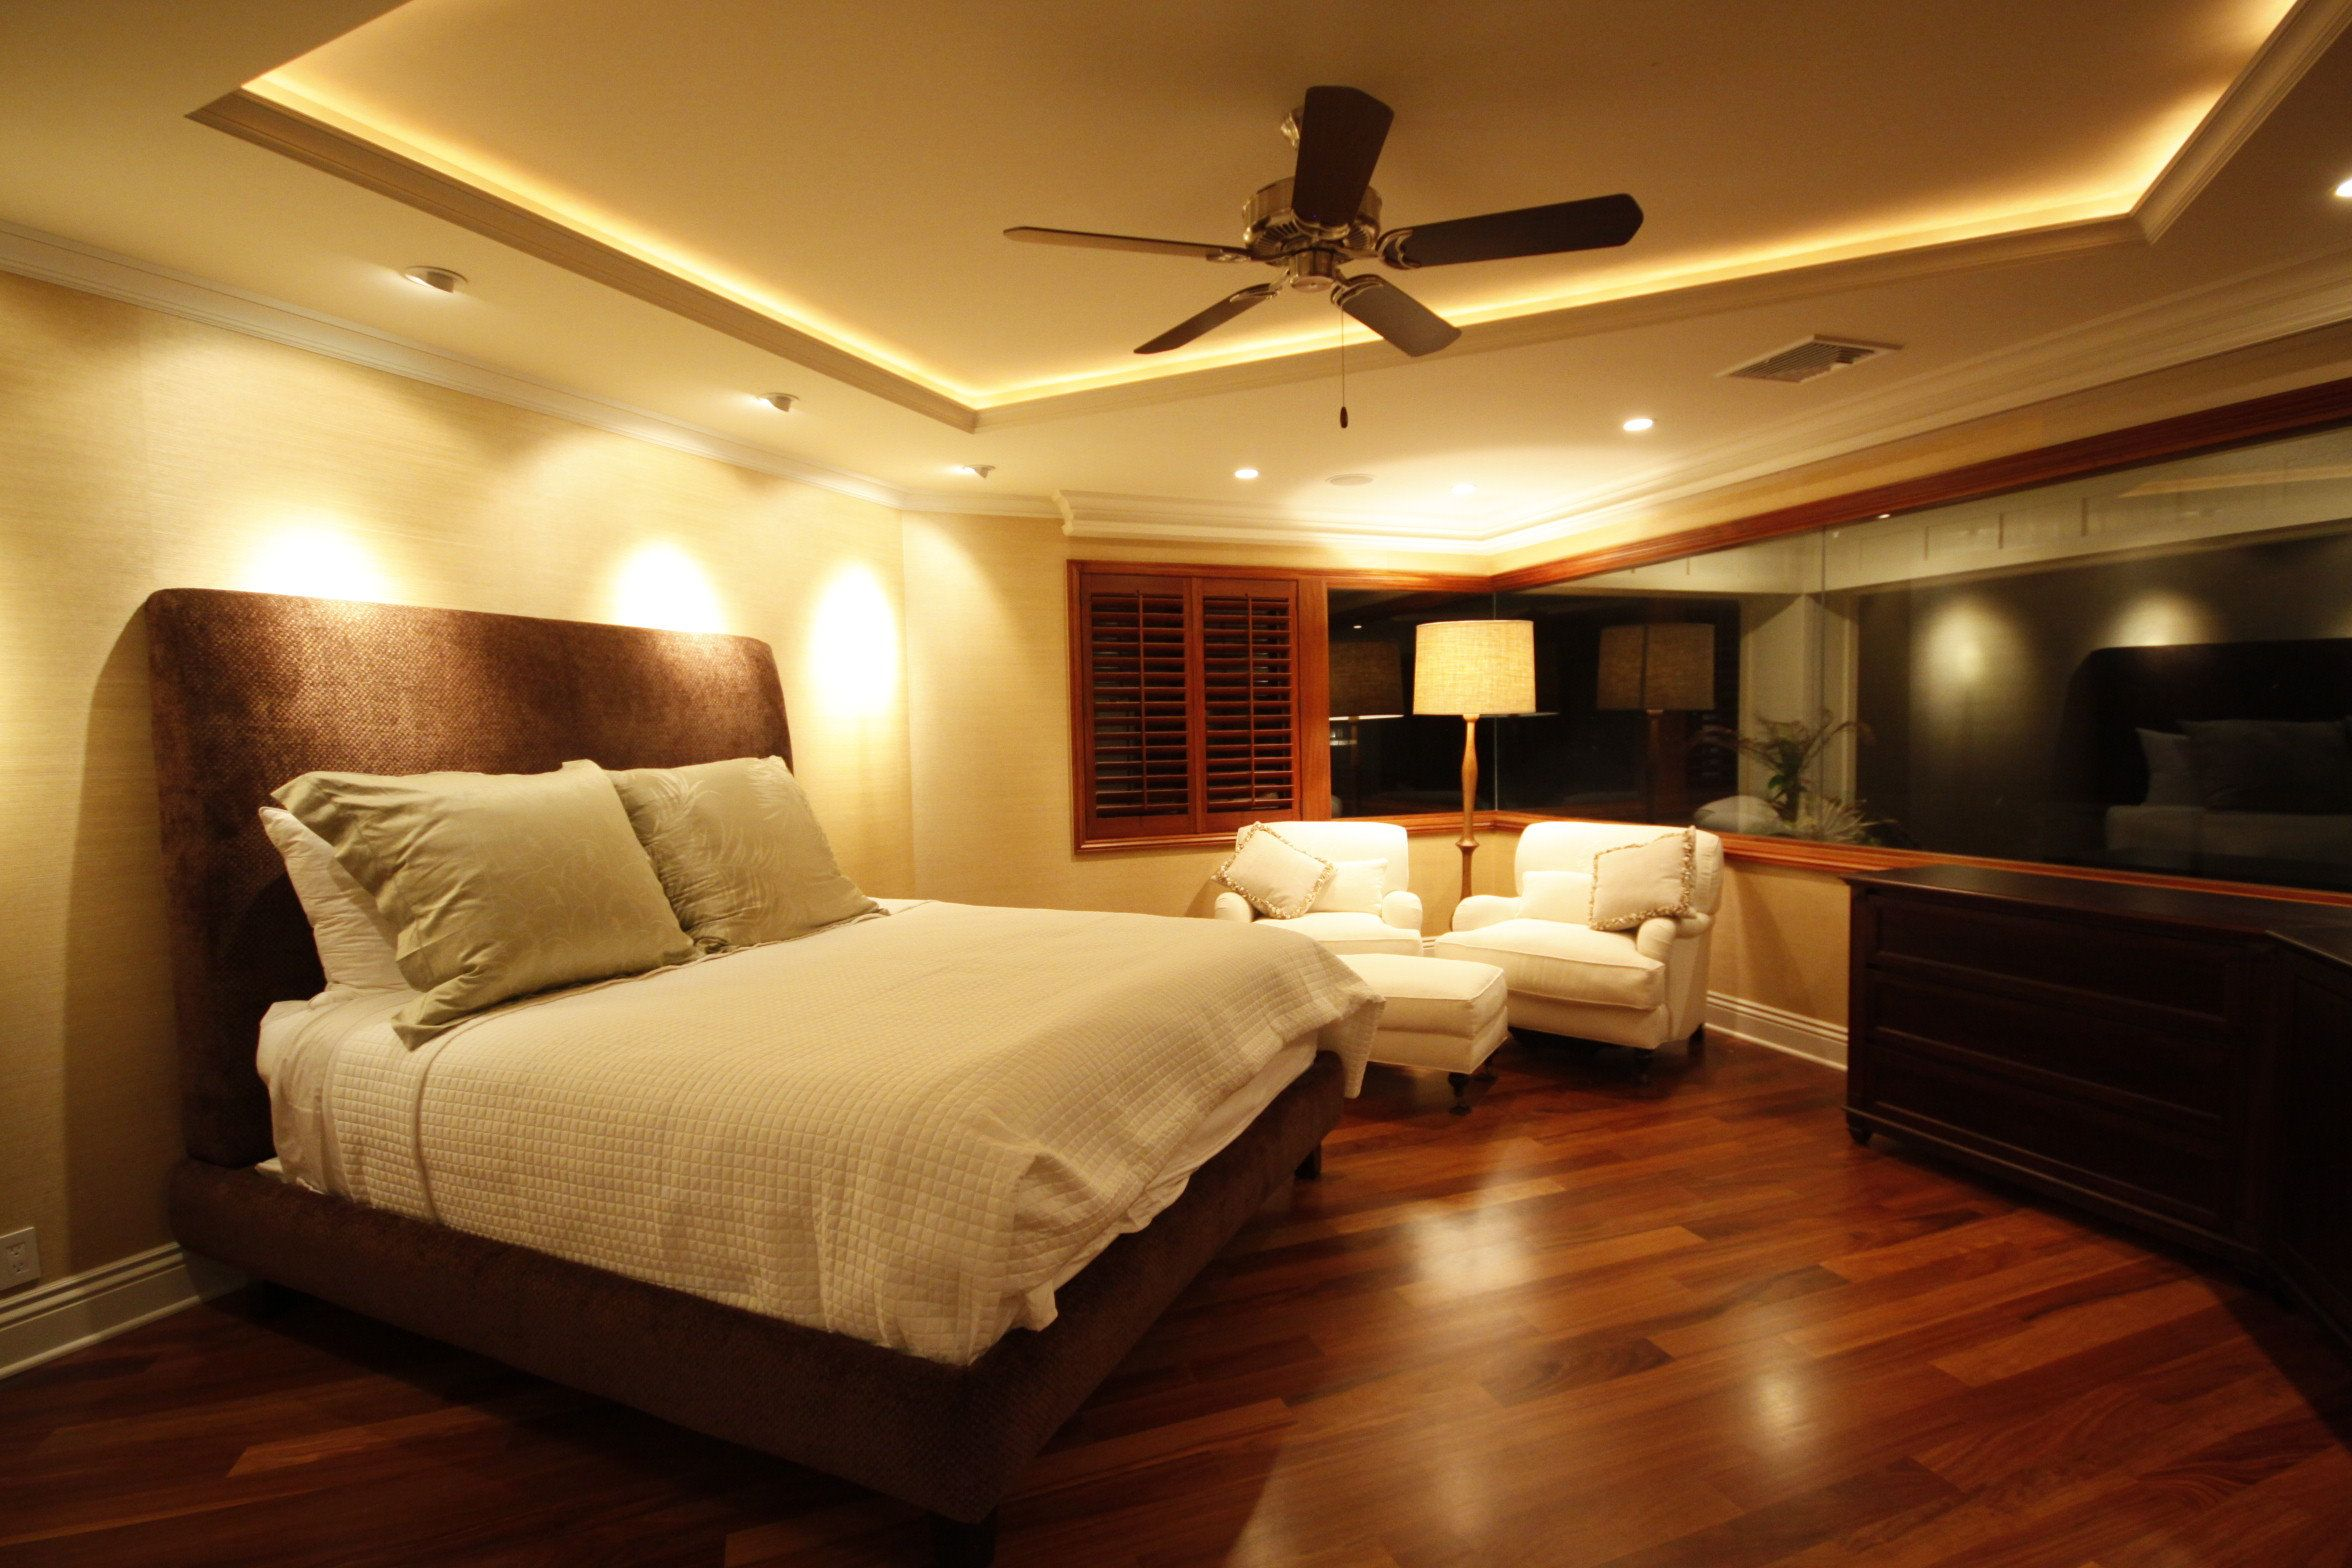 Appealing master bedroom modern decor with wooden floors for Master bedroom ceiling designs